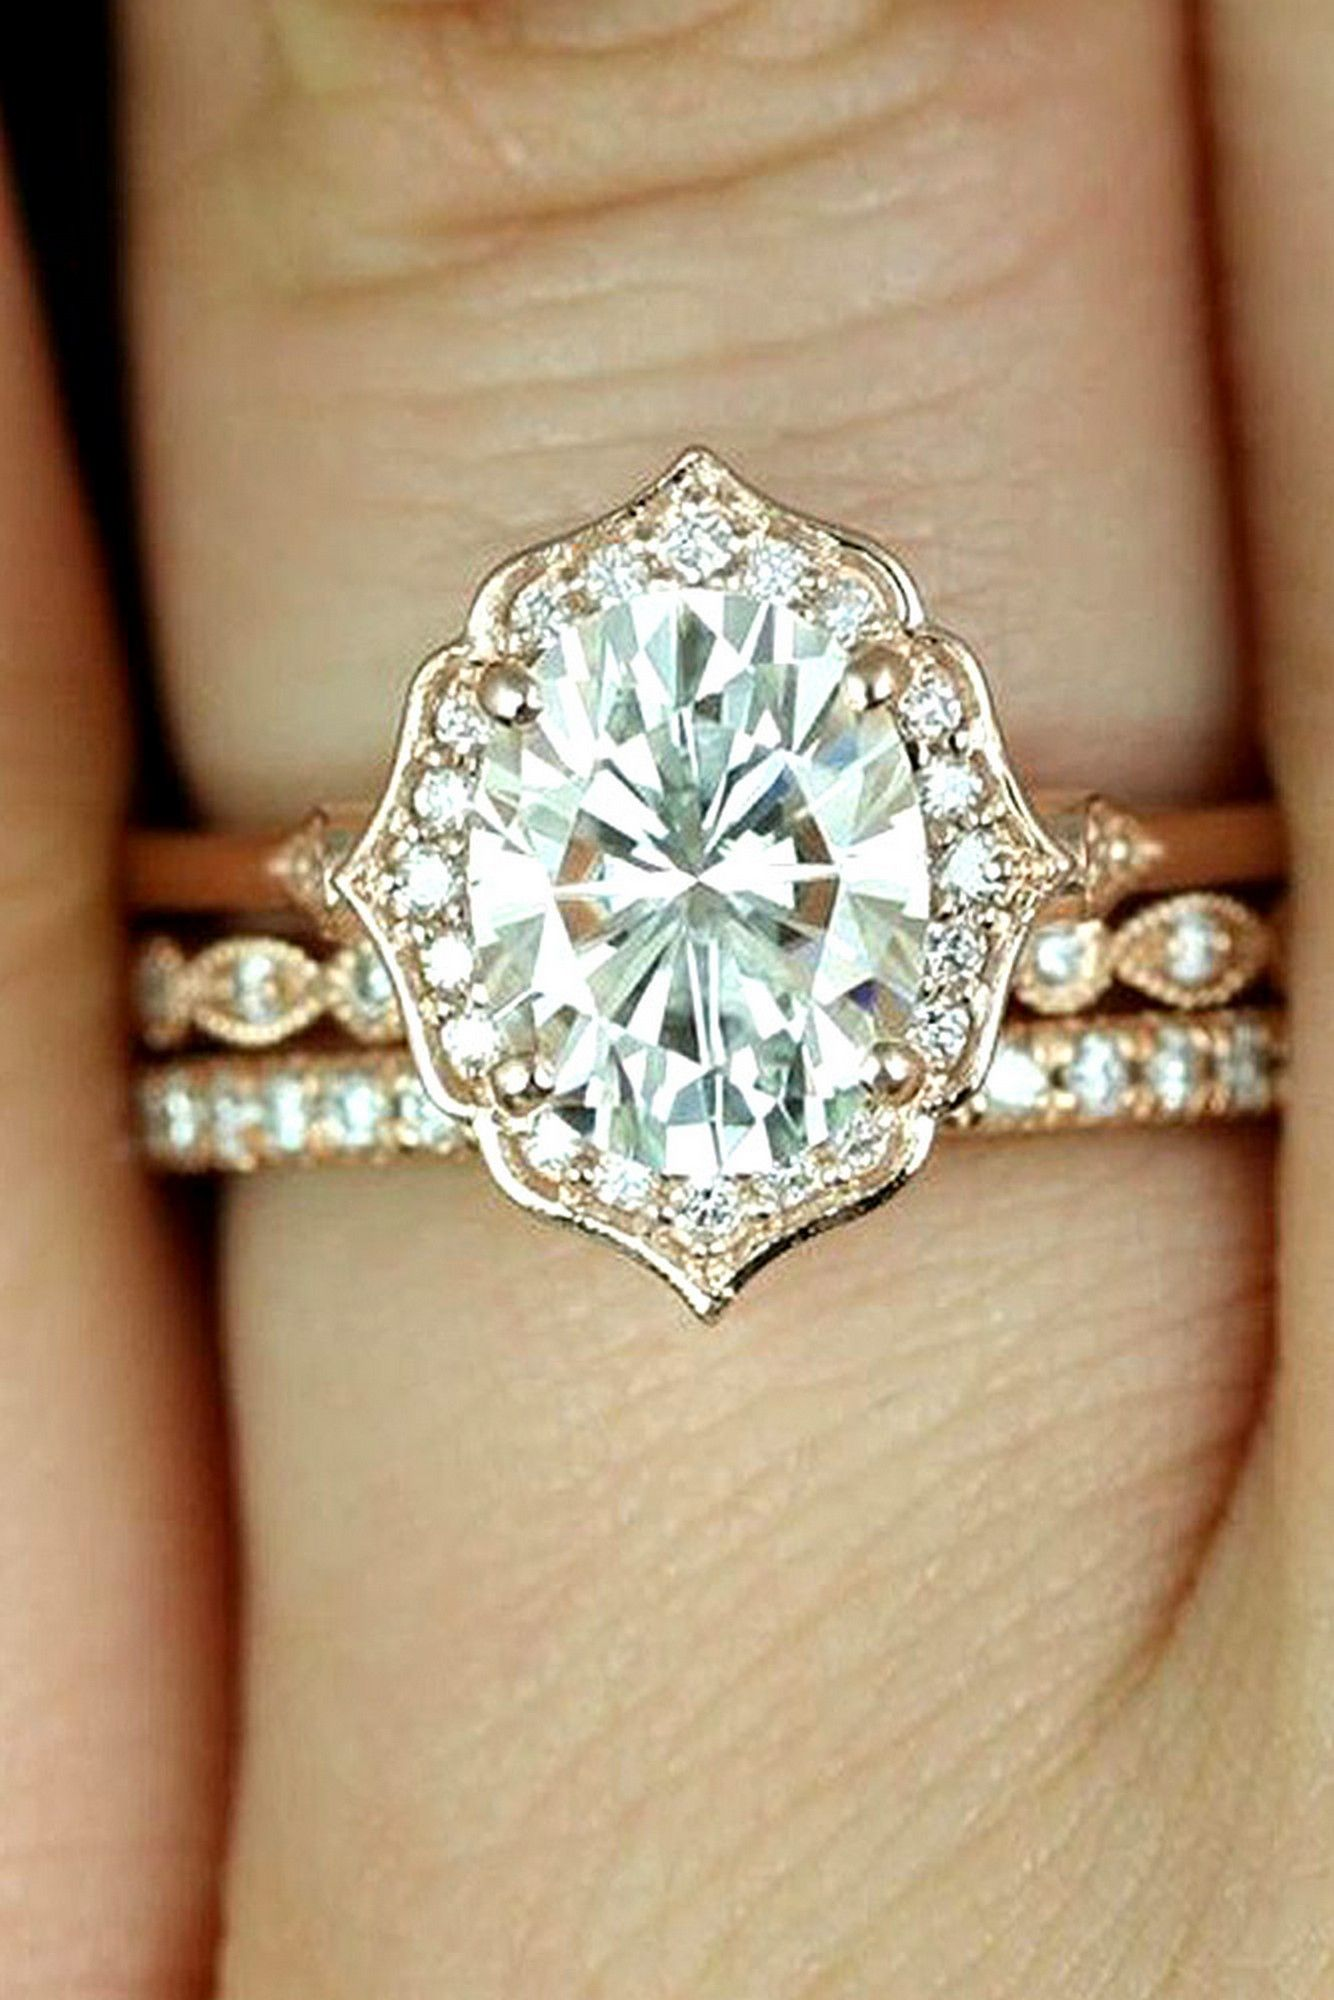 offering stylish engagement find rings of mociun freshest hard be the truly with a pin to effortlessly